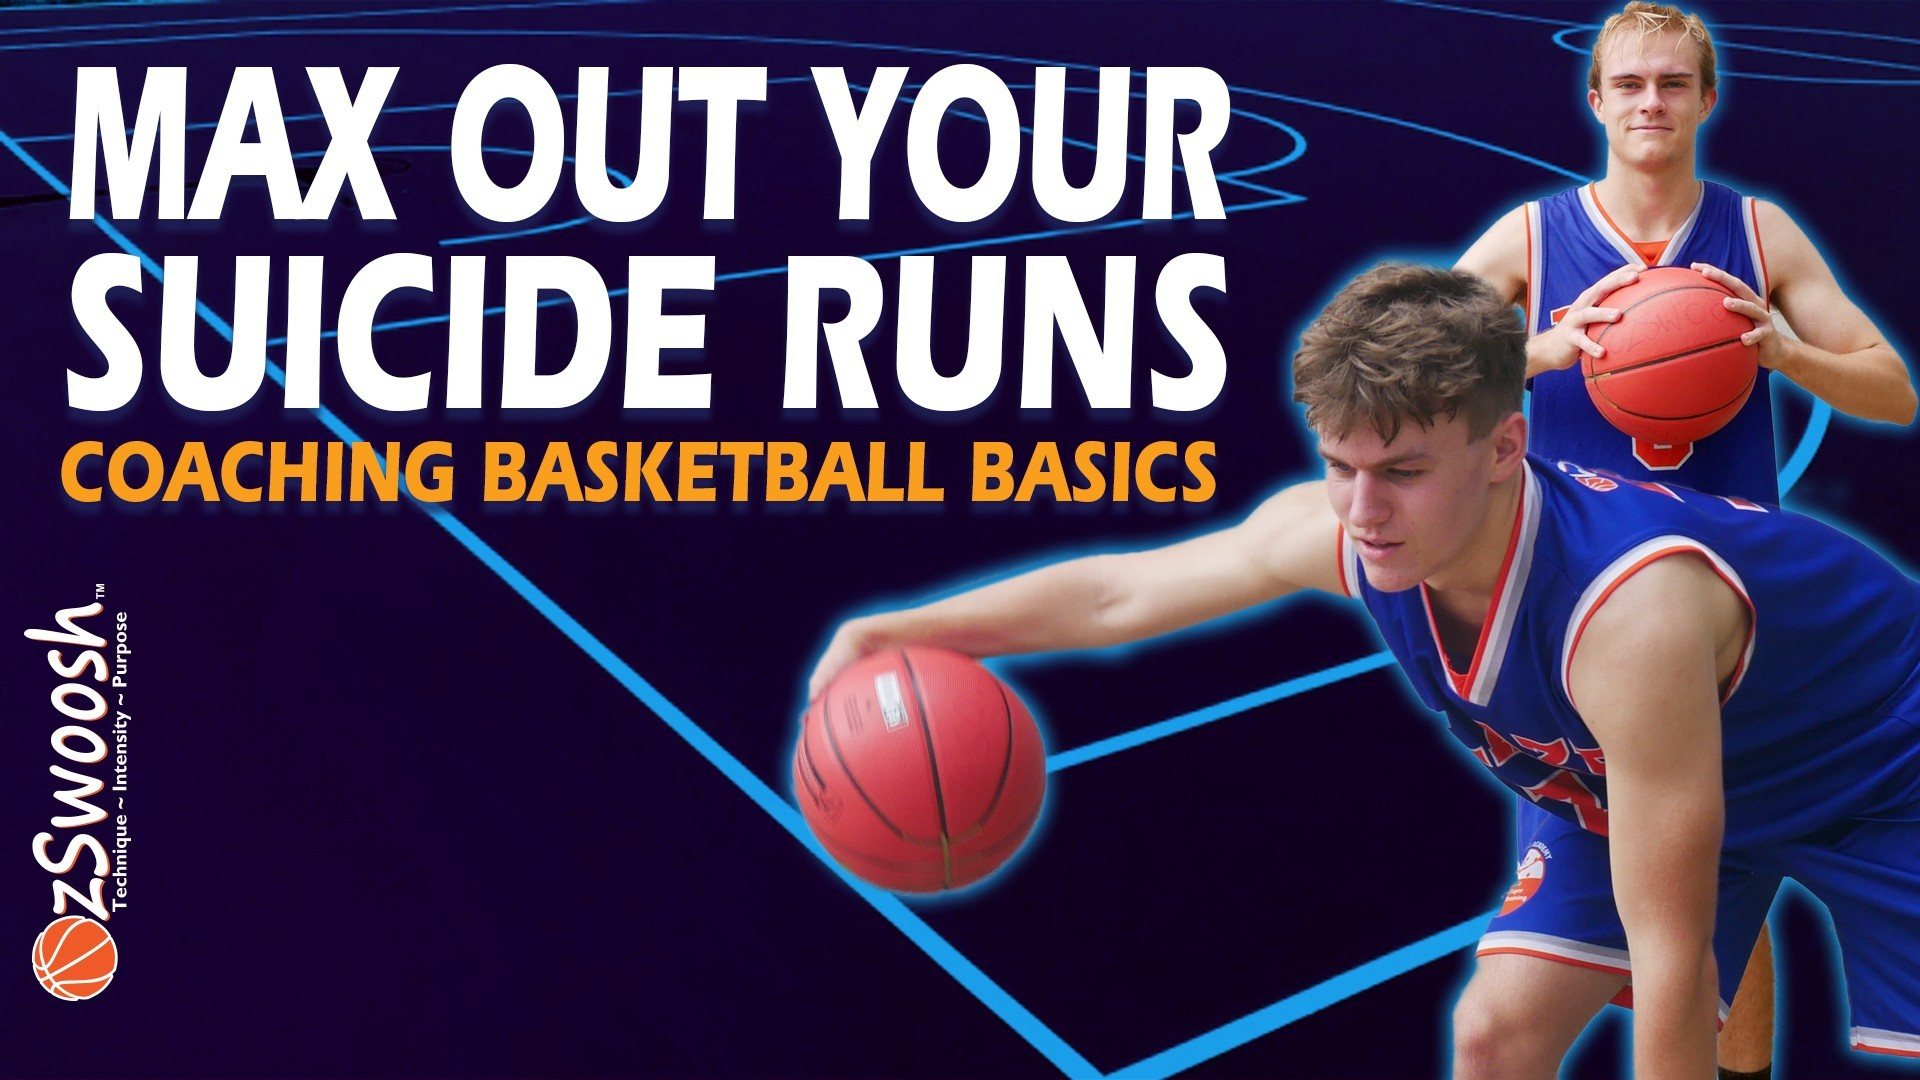 Basketball Agility Drill - ' Suicide Dribbling' - Coaching Basketball Fundamentals